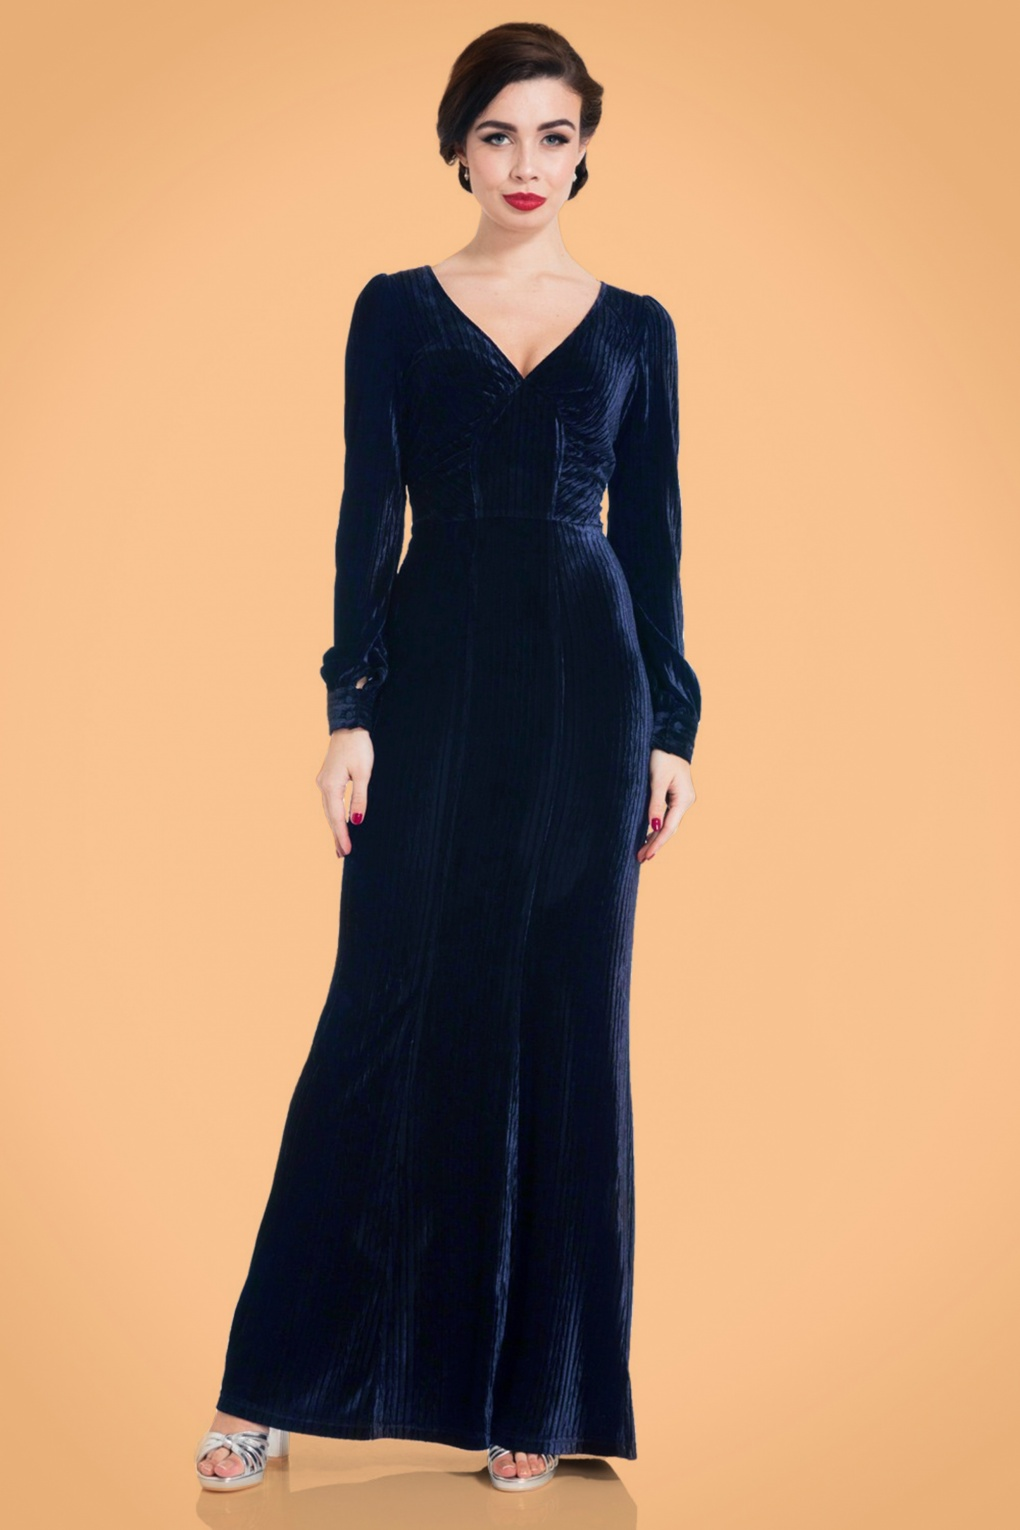 1930s Style Fashion Dresses 30s Nicki Velvet Maxi Dress in Navy £64.25 AT vintagedancer.com